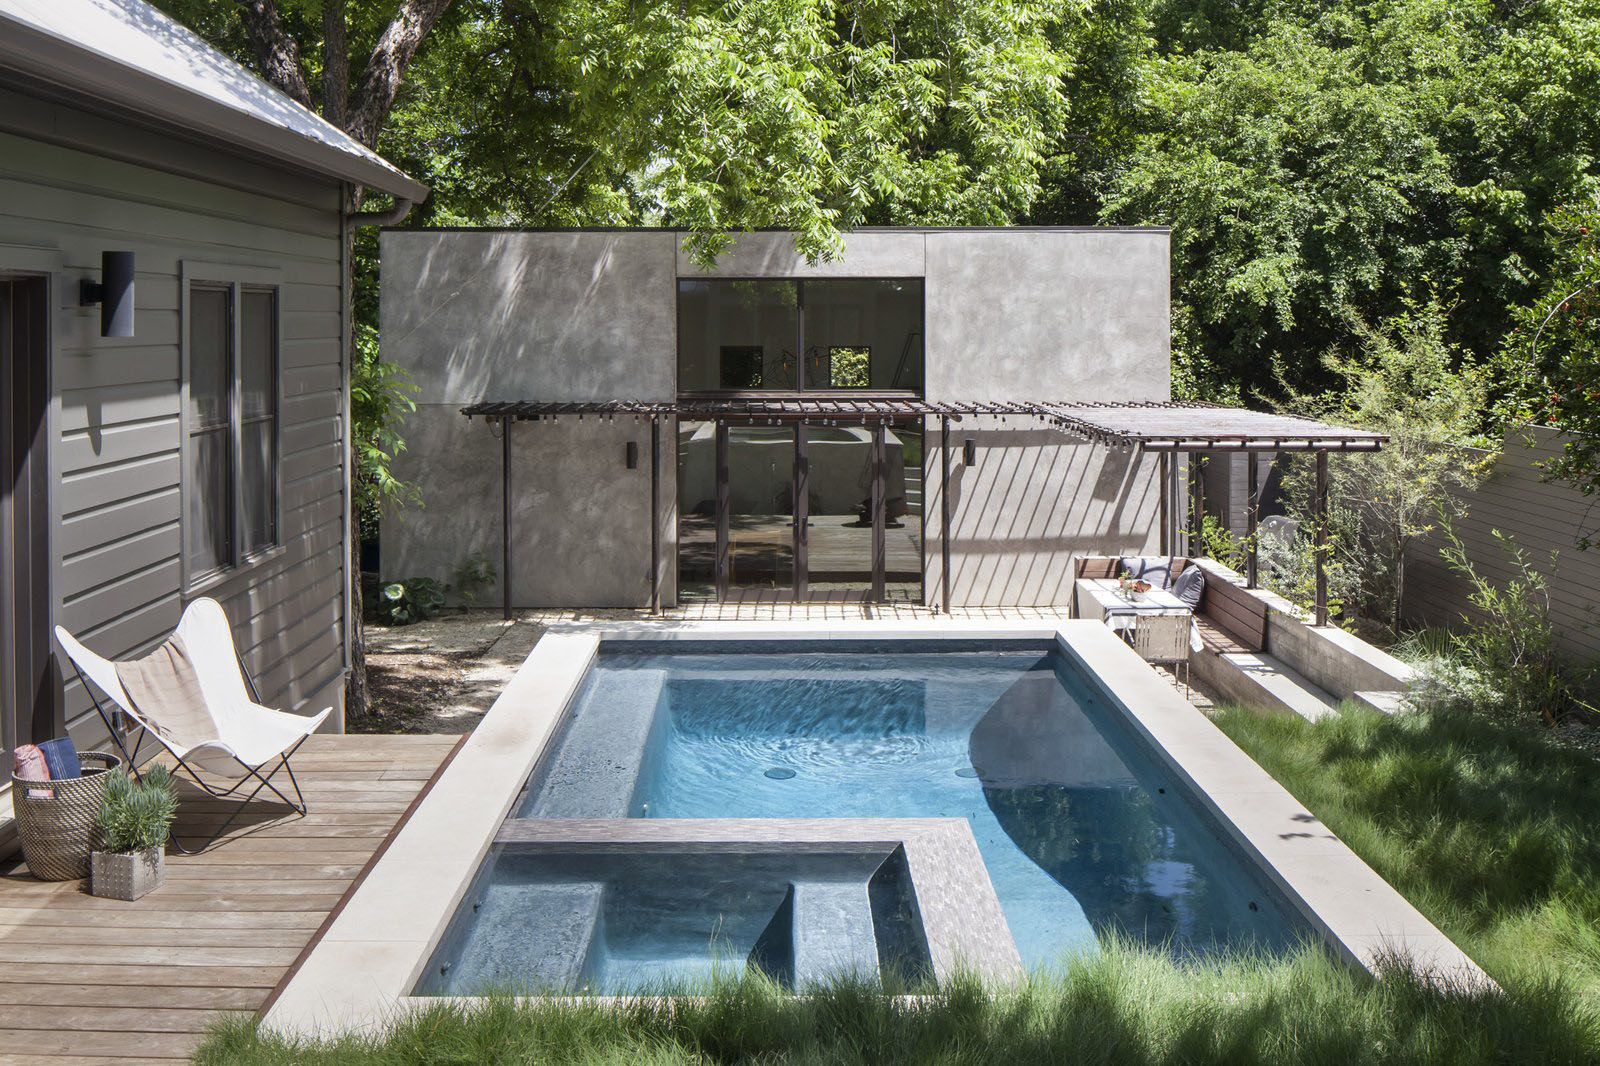 casita pool house austin texas 3 idesignarch interior design